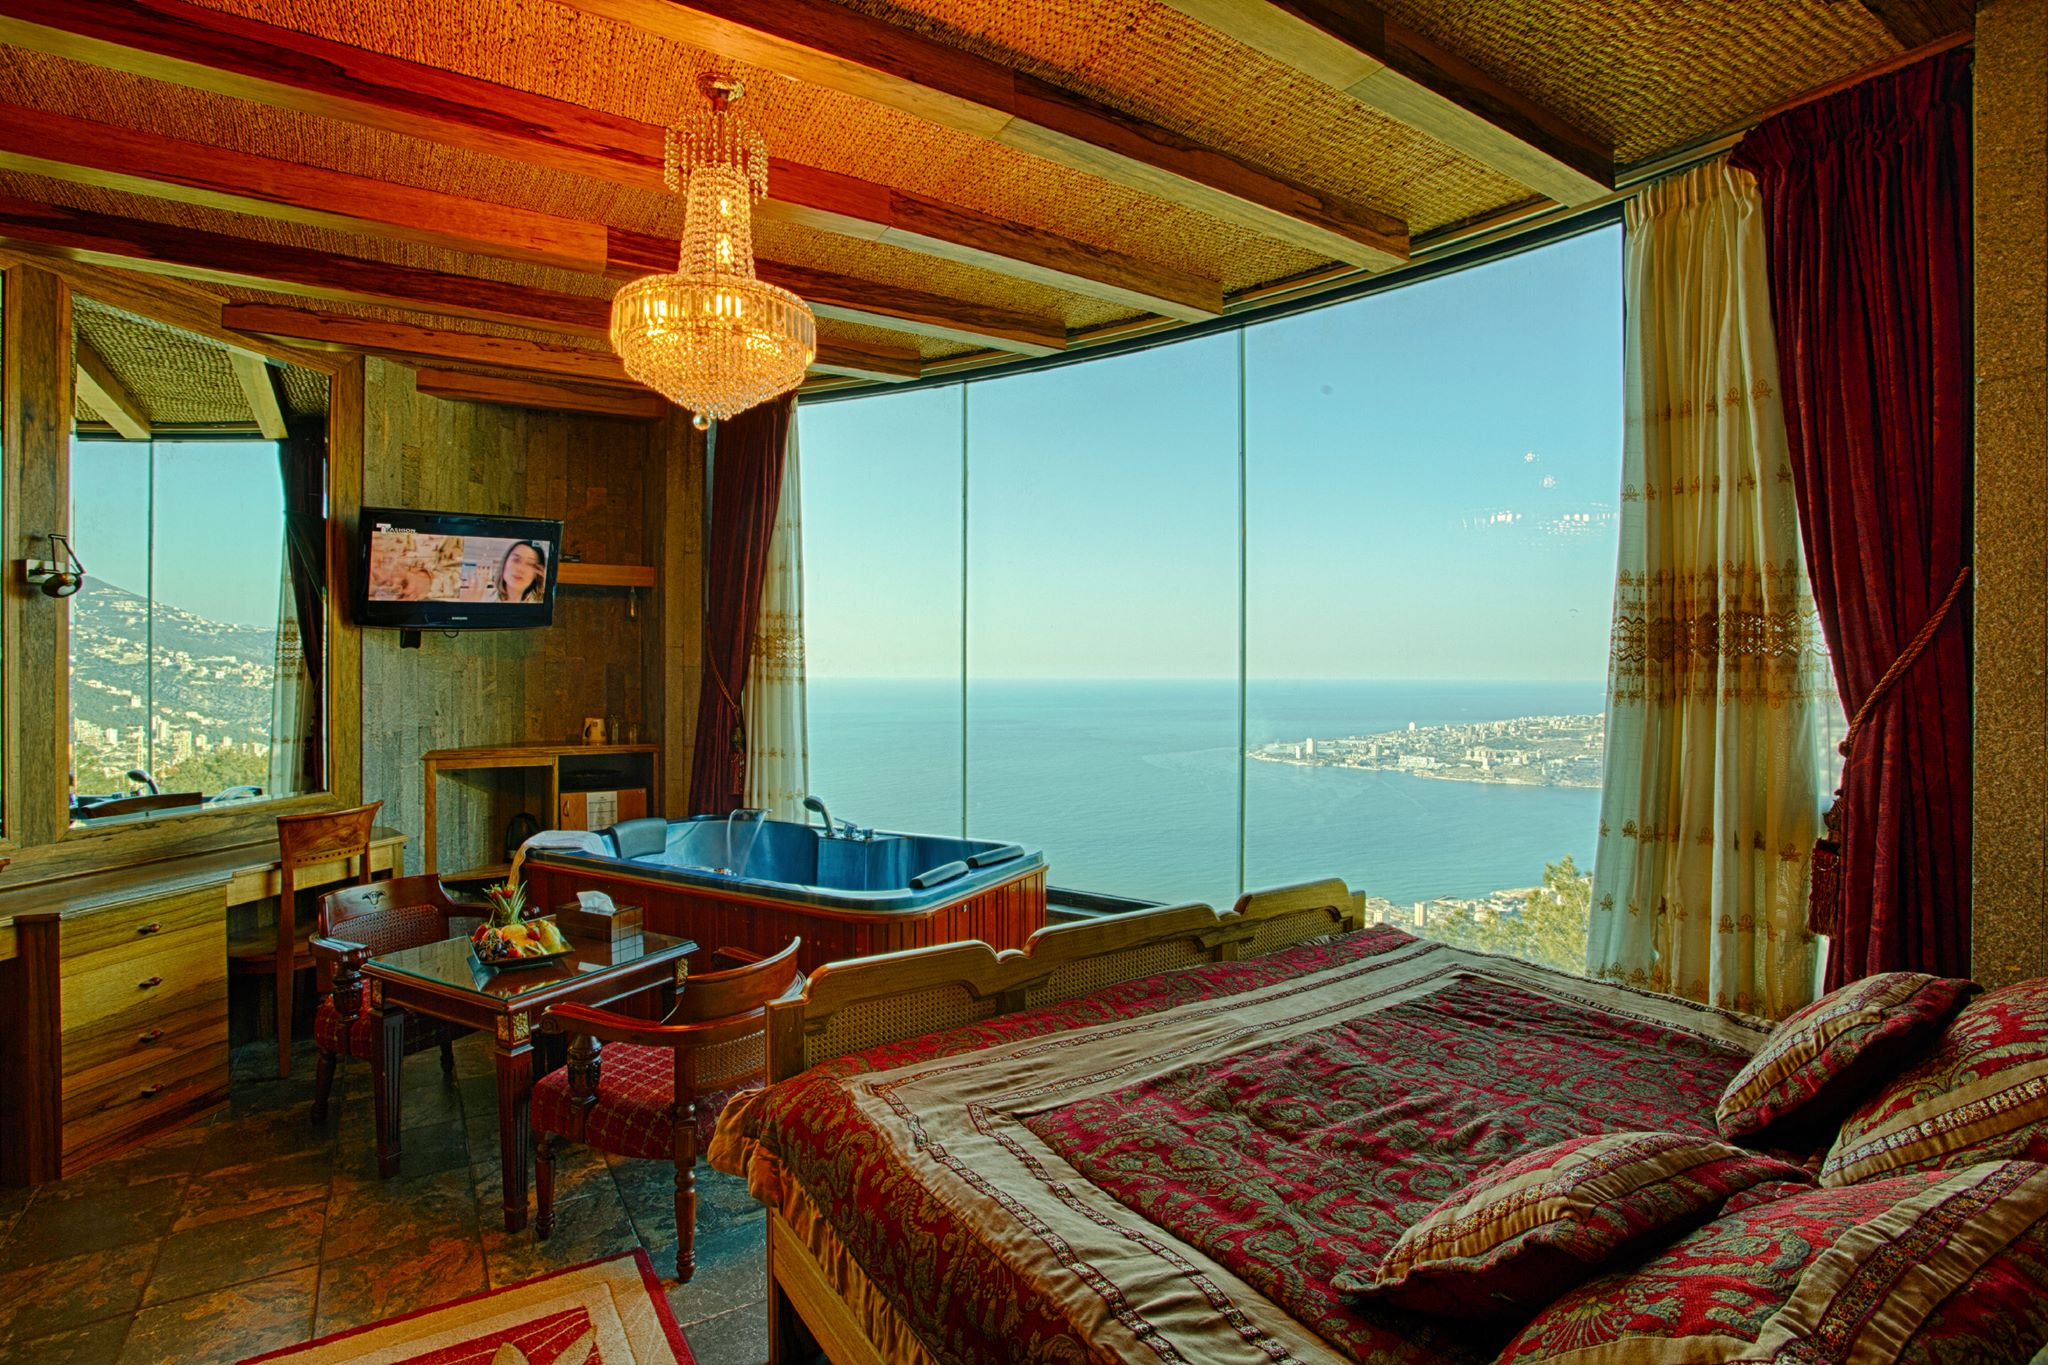 Bay Lodge Boutique Hotel Harissa Jounieh Lebanon Home